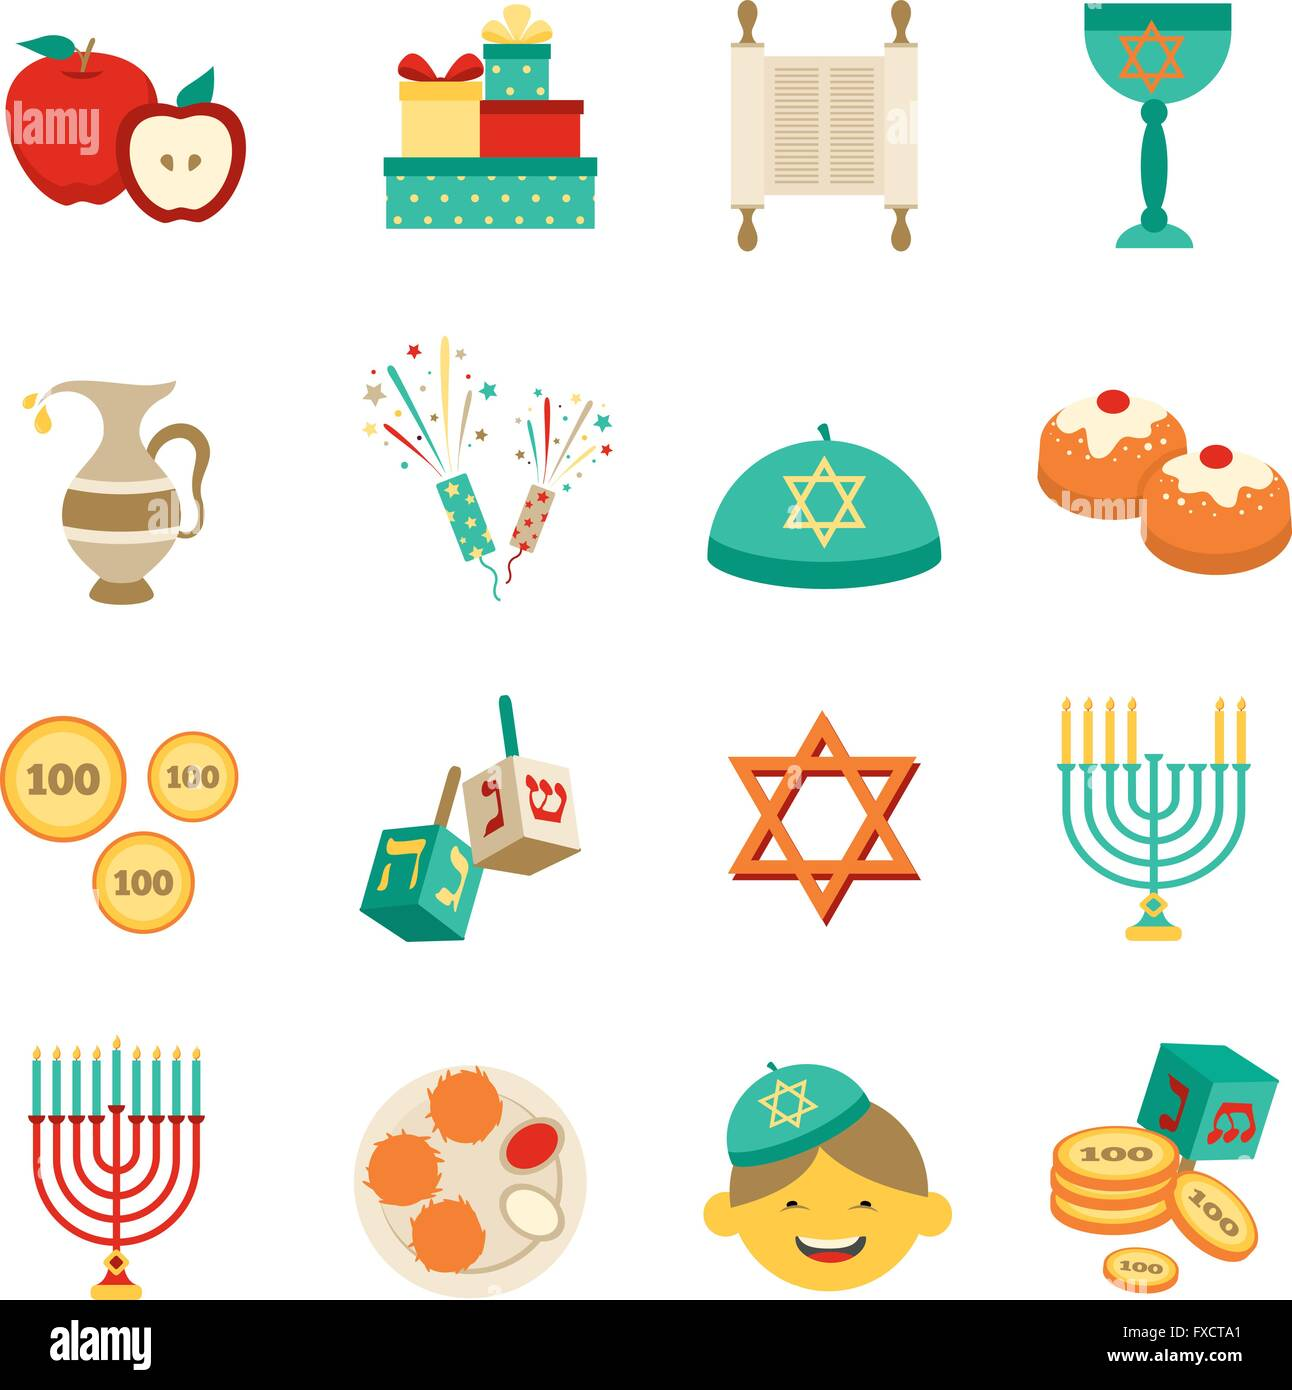 Symbols of hanukkah icons set stock vector art illustration symbols of hanukkah icons set buycottarizona Images